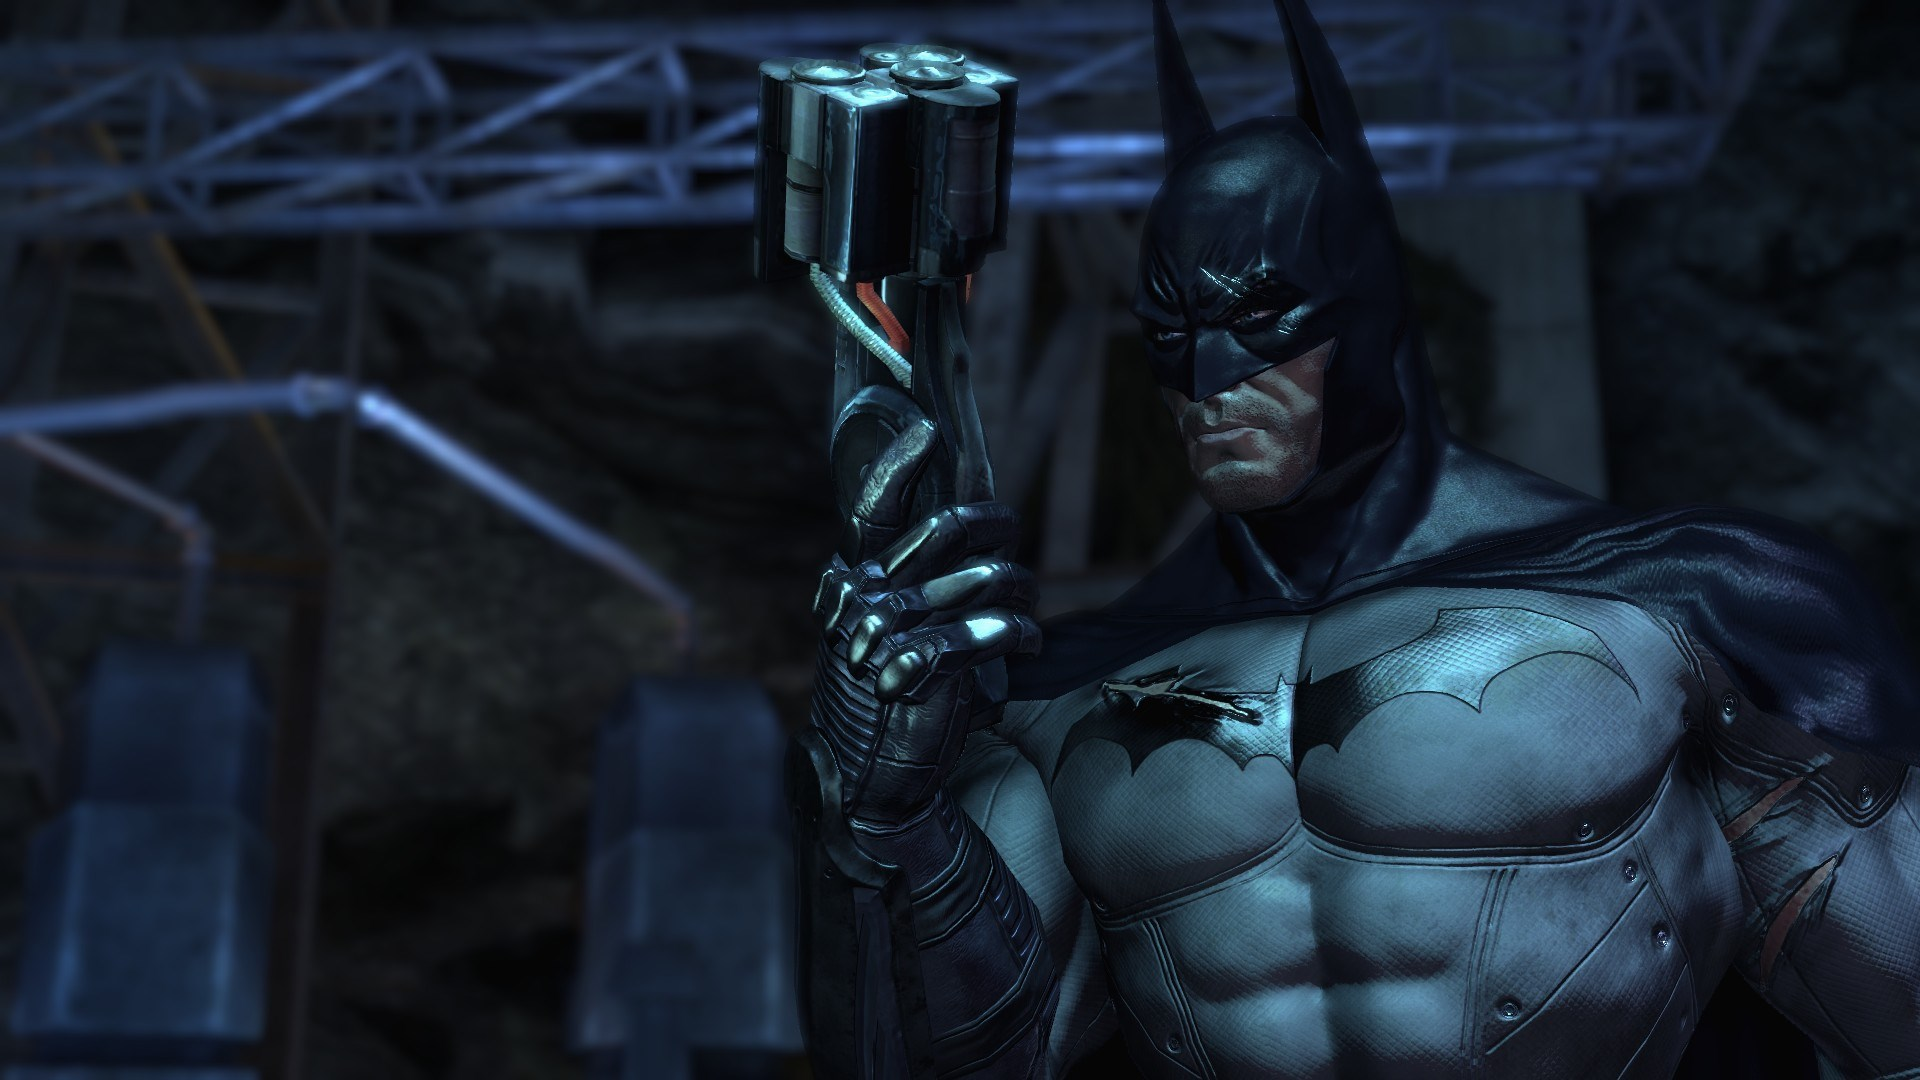 batman-arkham-asylum-desktop-nexus-1920x1080-wallpaper-wpc9002601